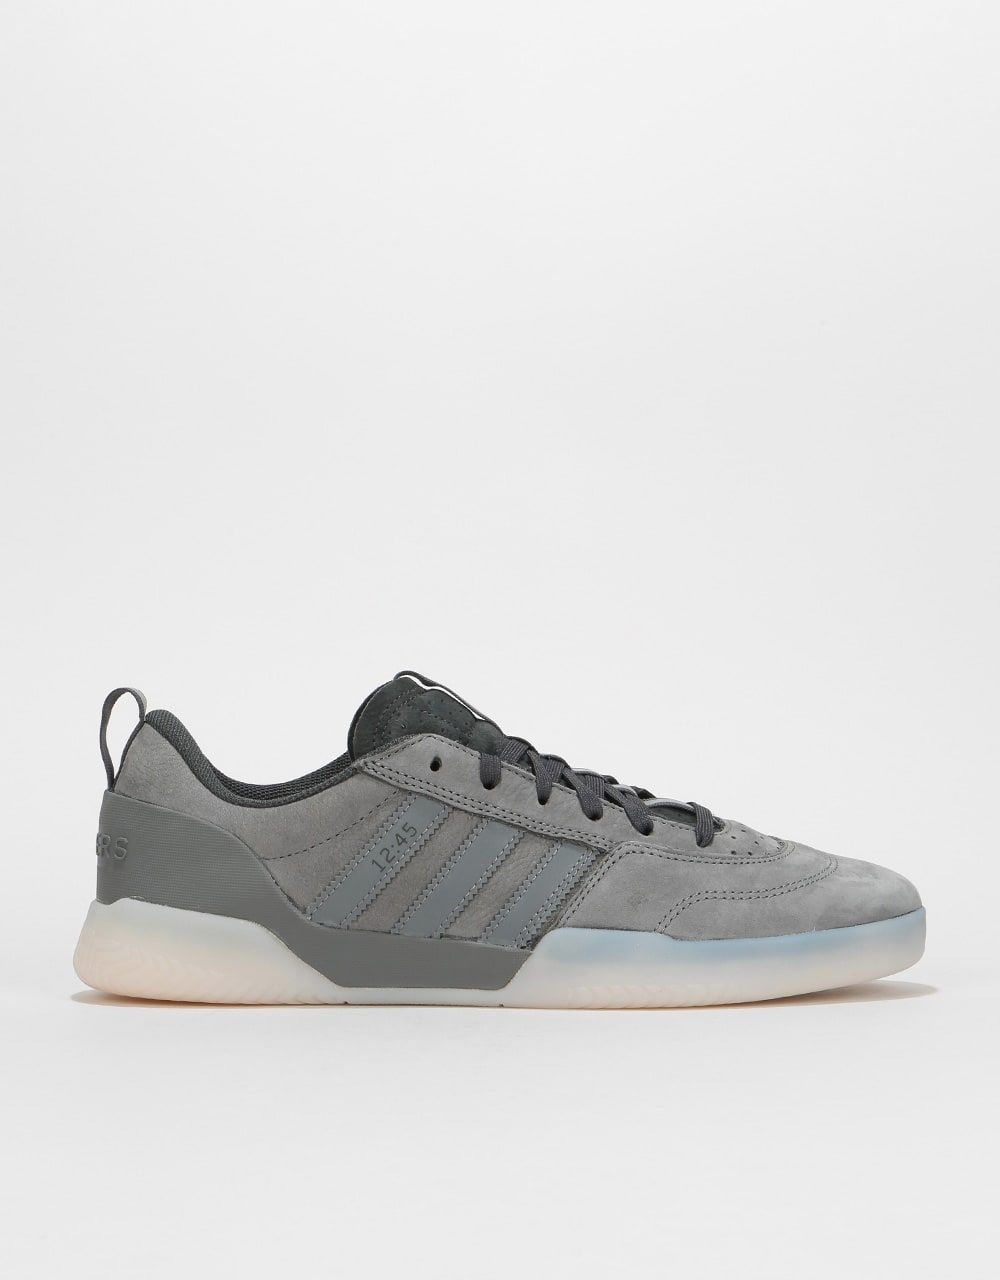 hot sales 6233c 3c77a Adidas x Numbers City Cup Skate Shoes - Grey Carbon Grey   Skate Shoes